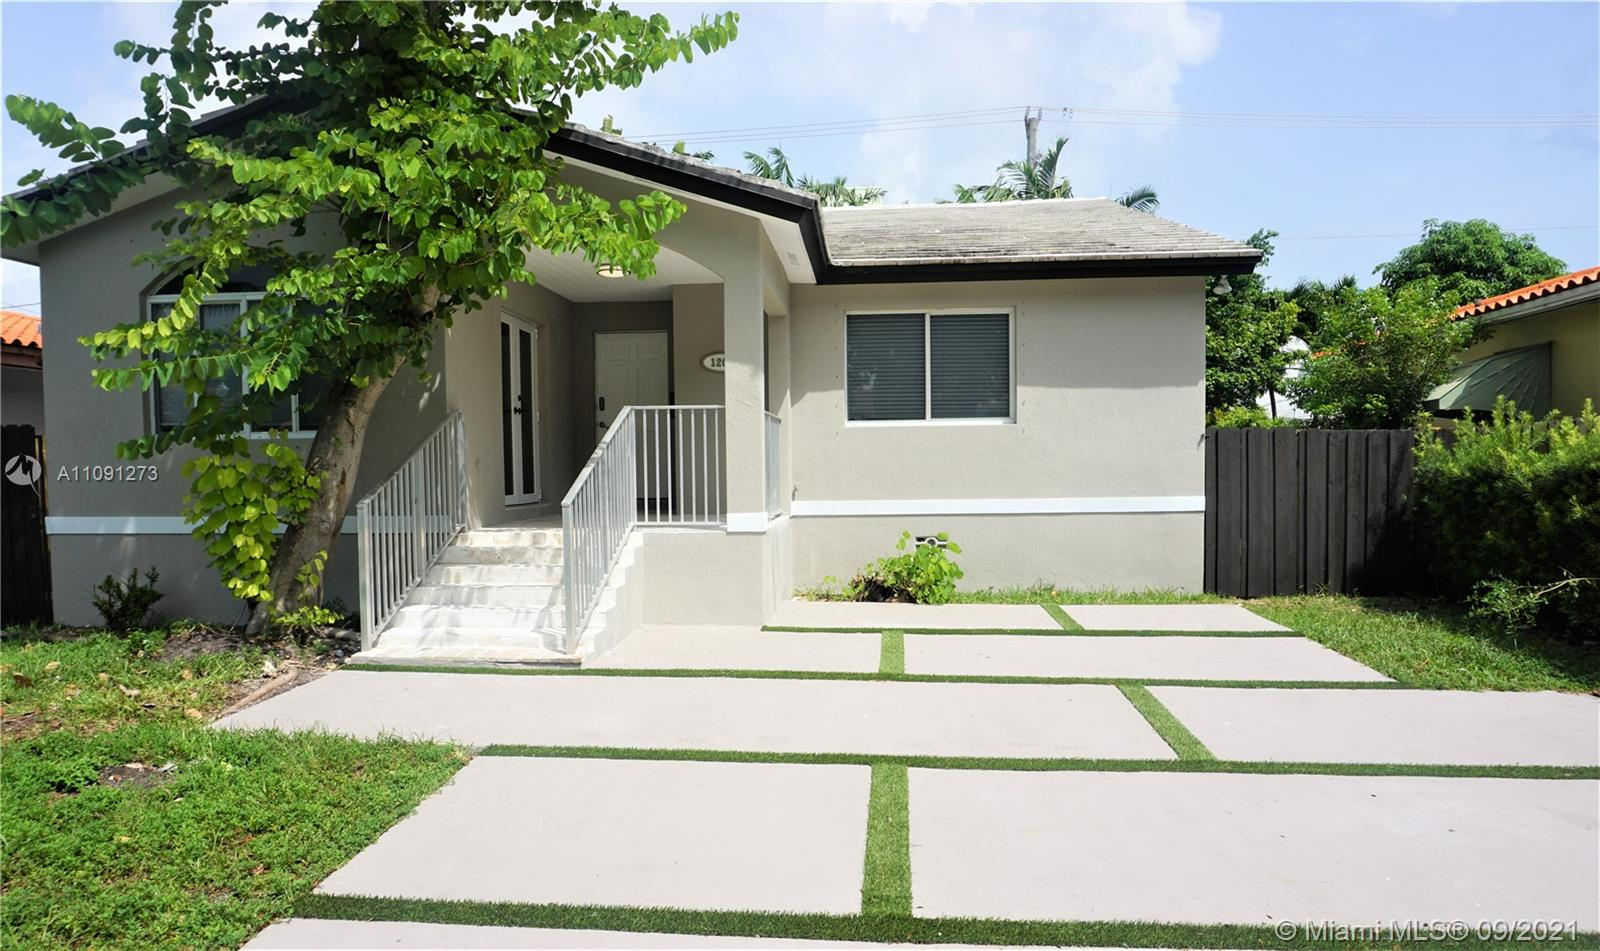 Modern 3 bedroom, 2 1/2 bath pool home in Miami Beach. Home features open concept living, dining and kitchen with French doors opening to waterfall pool.  All three bedrooms and living room consists of Brazilian wood floor.   Great location, close to the beach, shops and restaurant